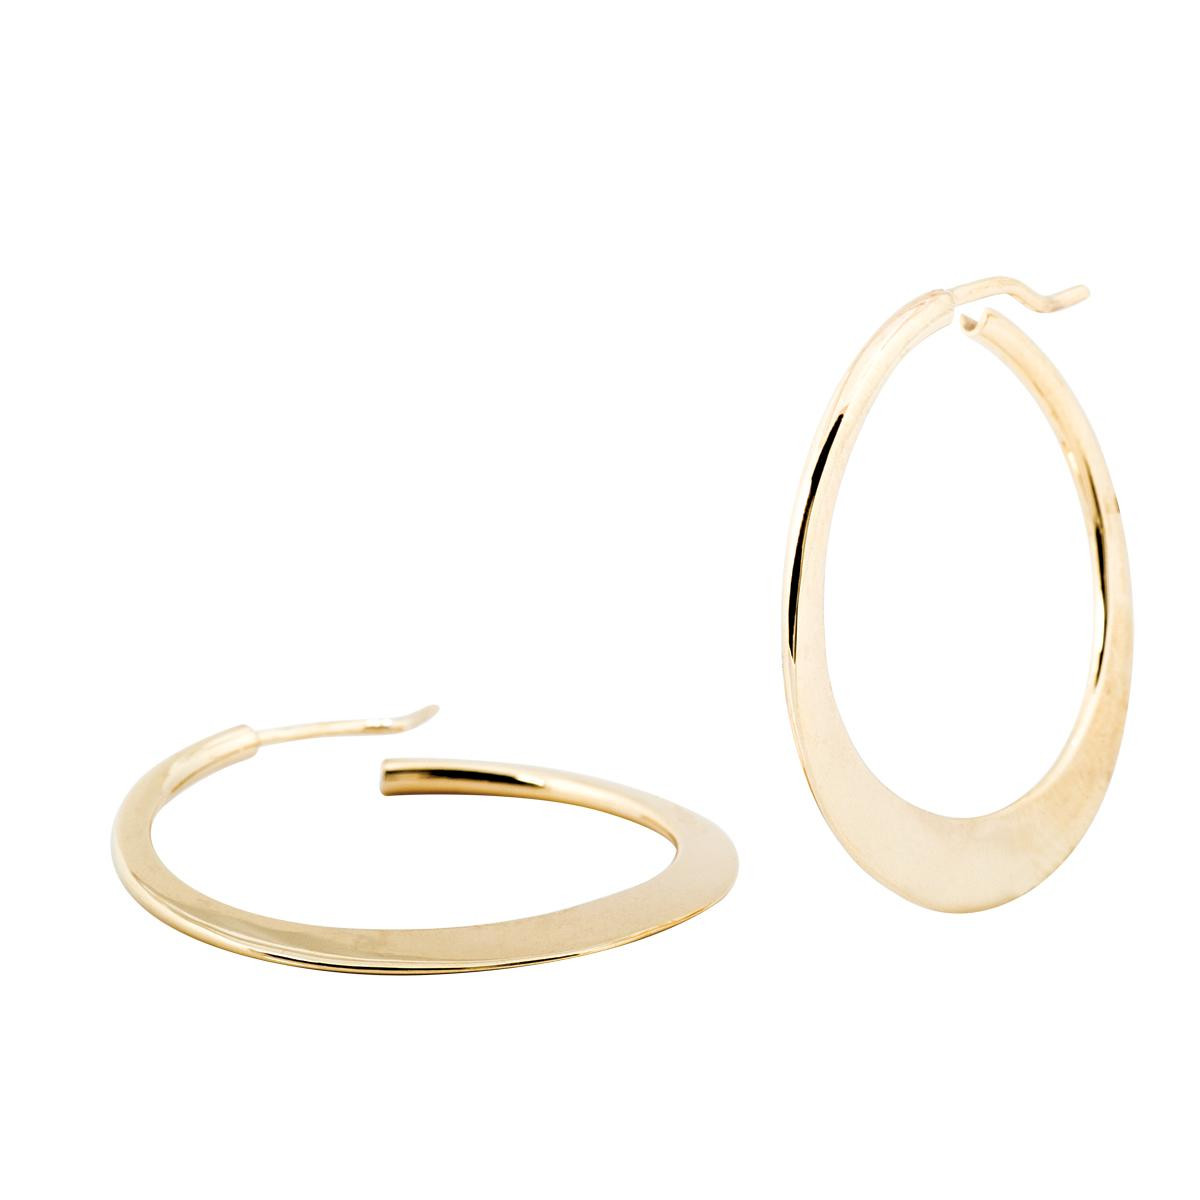 Vintage 14K Crescent Shaped Hoops